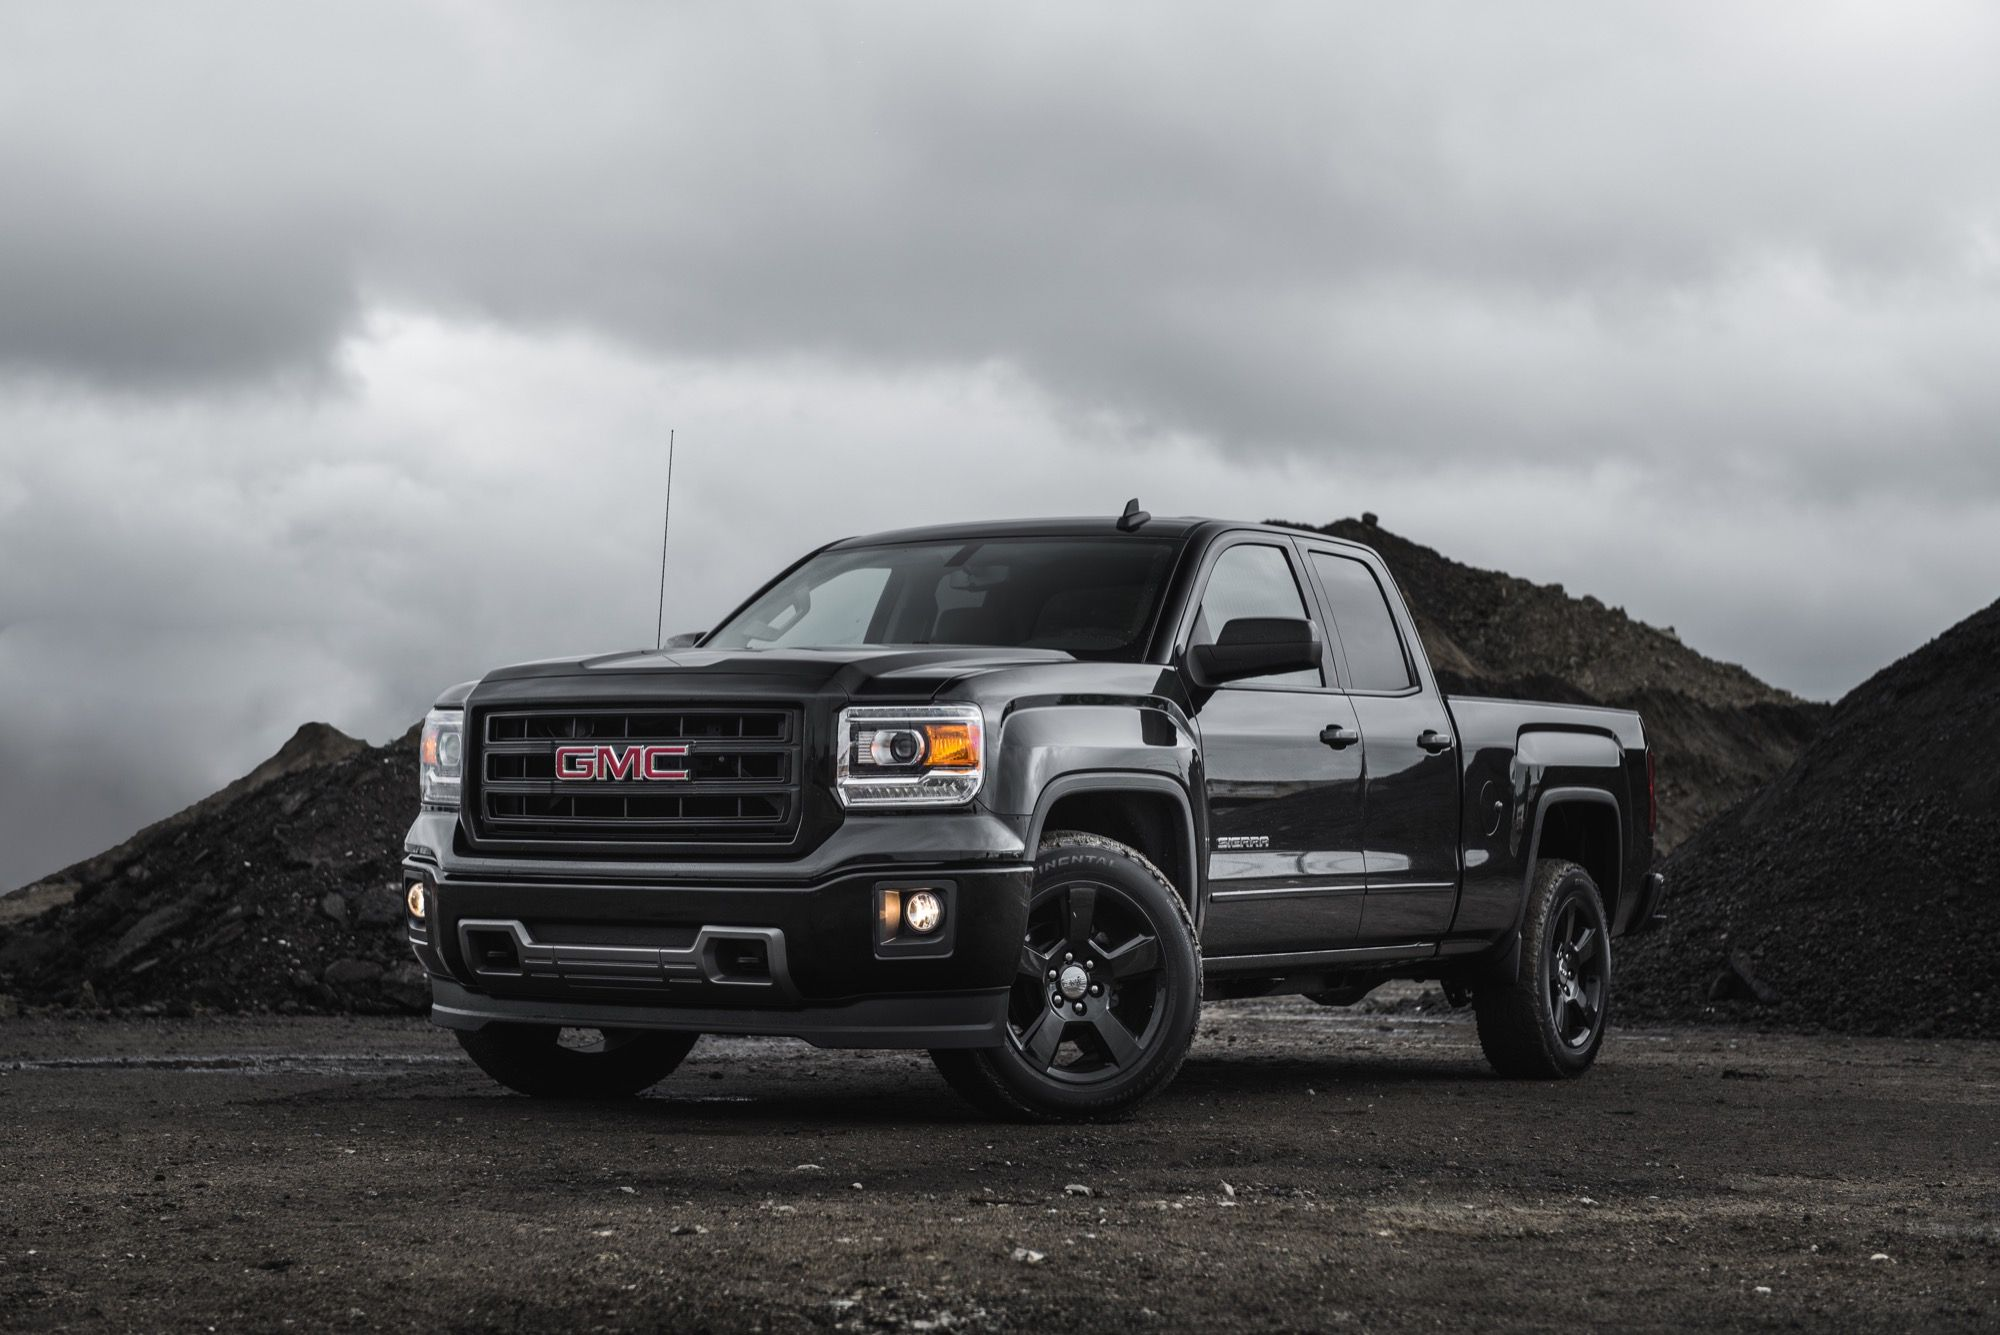 2017 gmc sierra 1500 front grill 2017 trucks news pinterest front grill sierra 1500 and dream cars